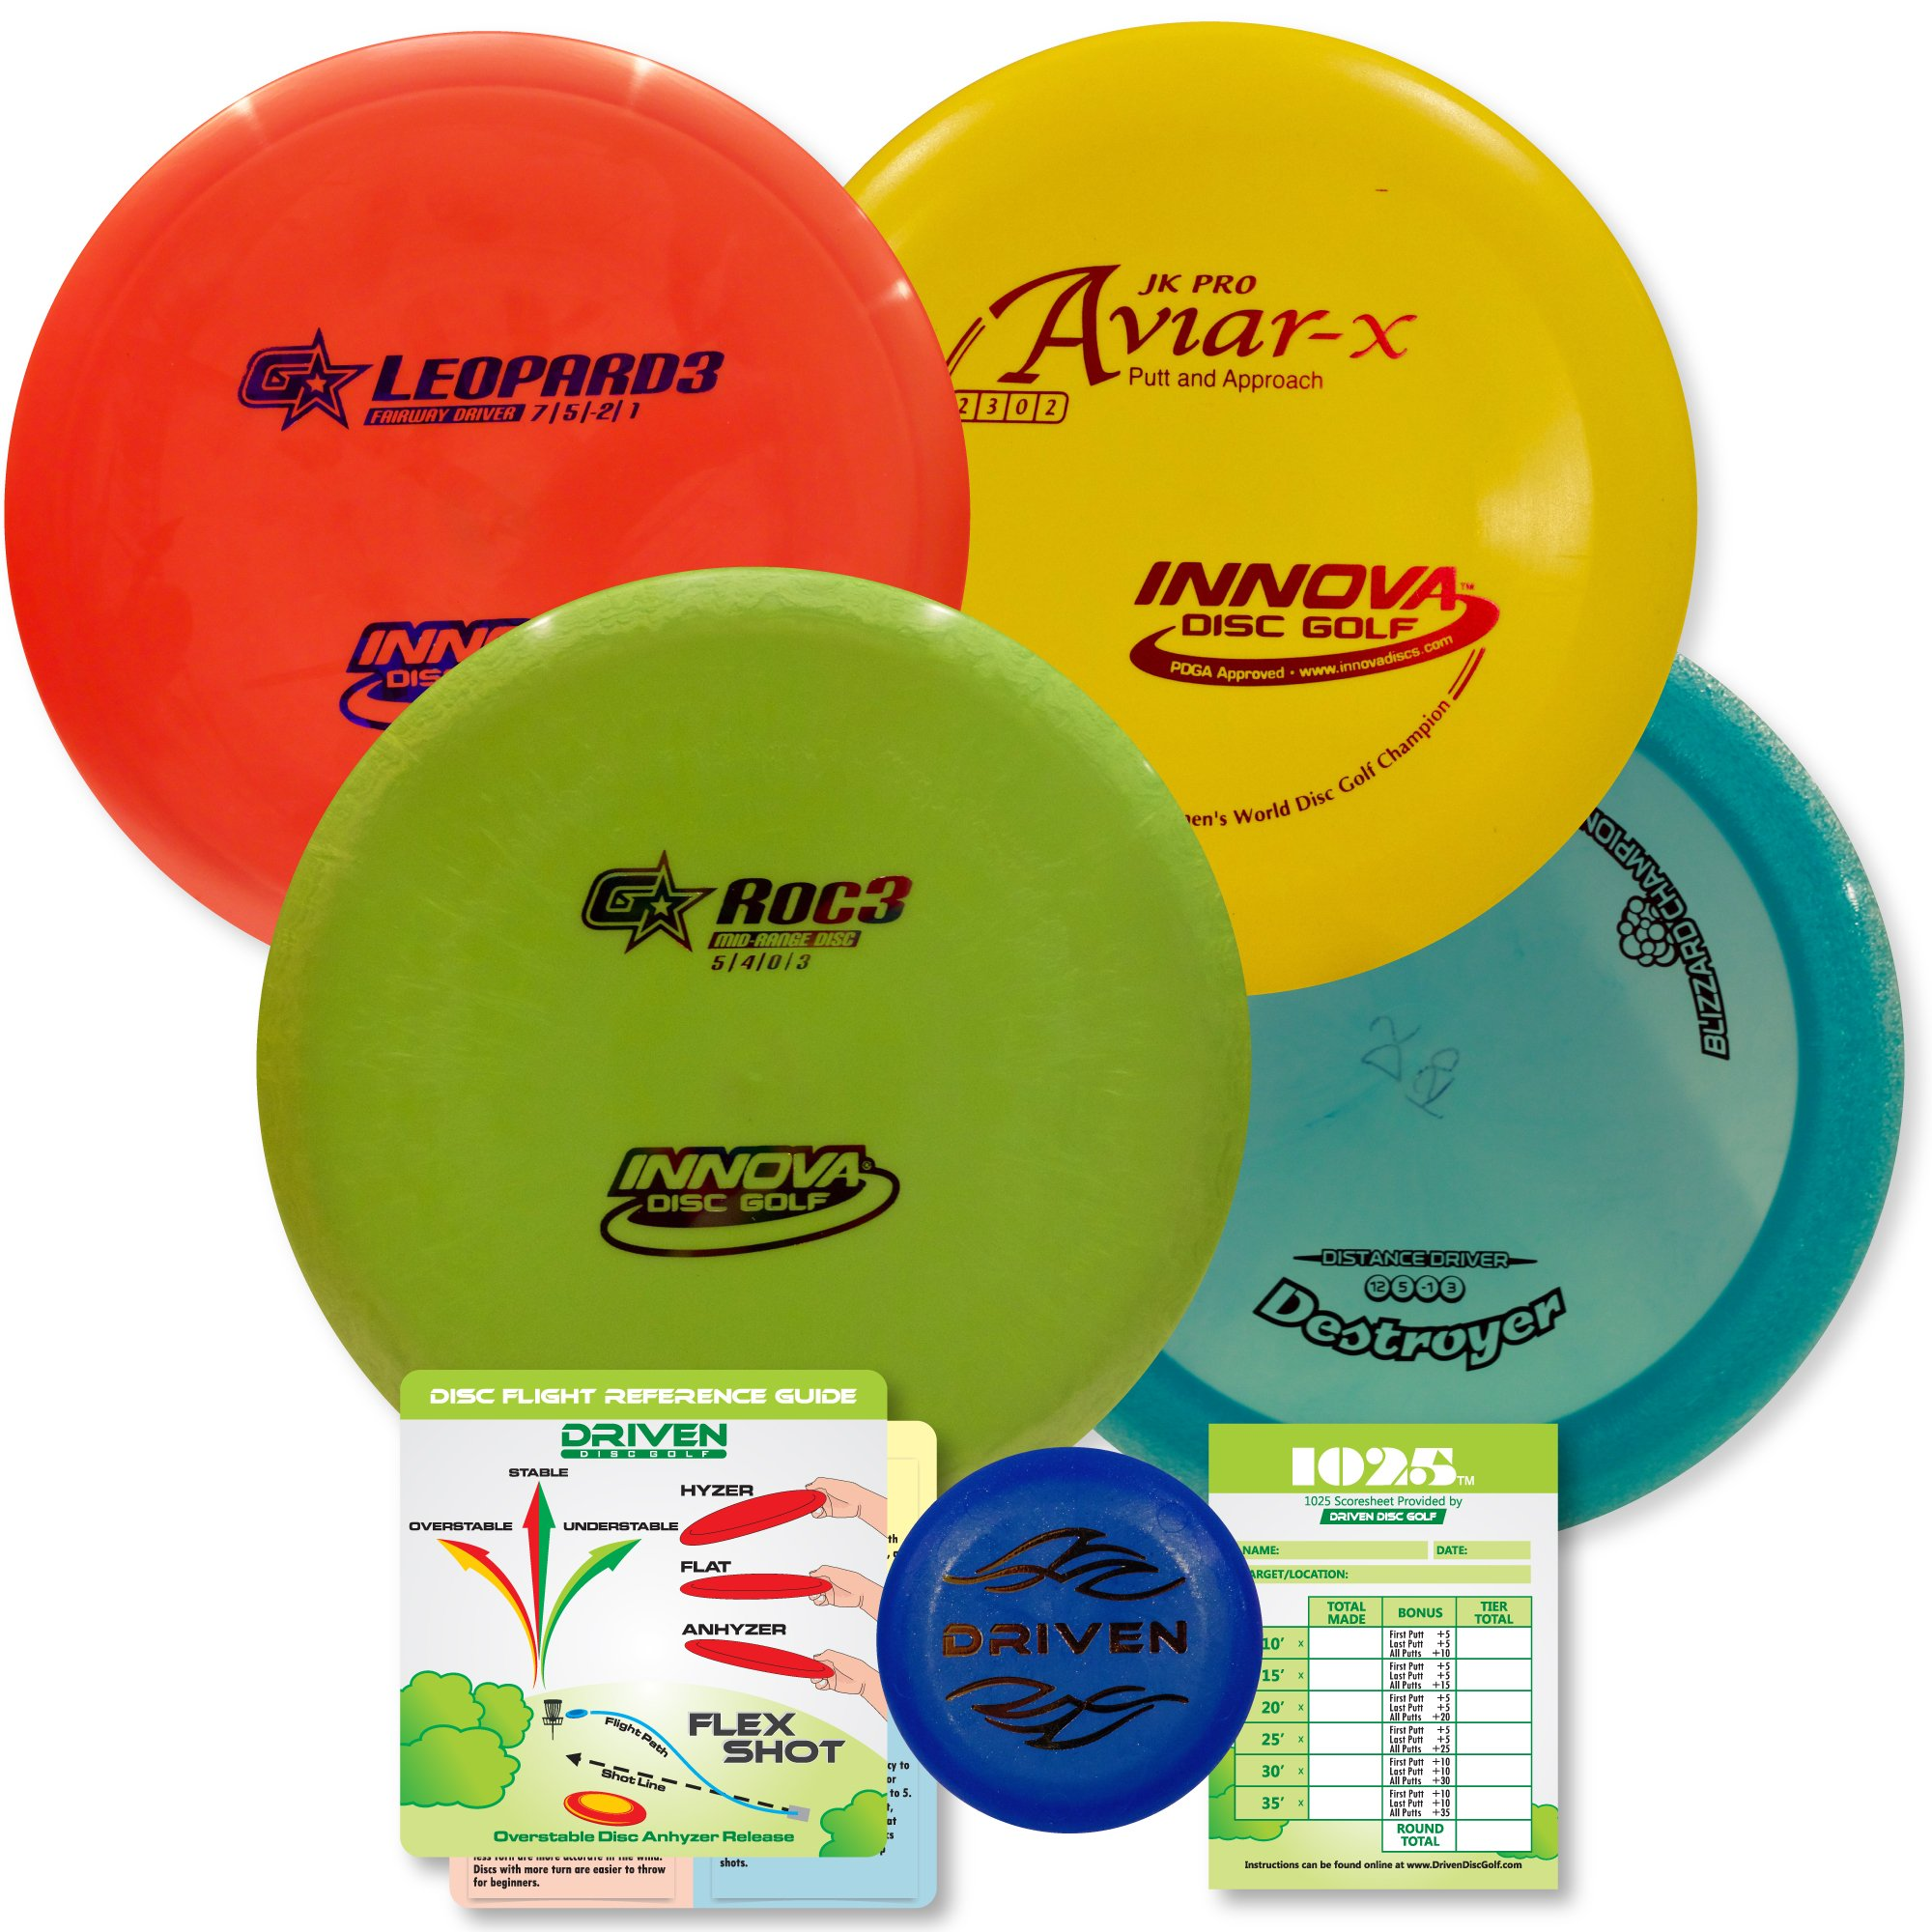 Innova Disc Golf Advanced Players Pack | Premium 4 Disc Set - for Intermediate and Experienced Players - 1025 Putting Game - Flight Reference Card - Driven Mini Marker | Disc Colors Vary by Driven Disc Golf (Image #7)